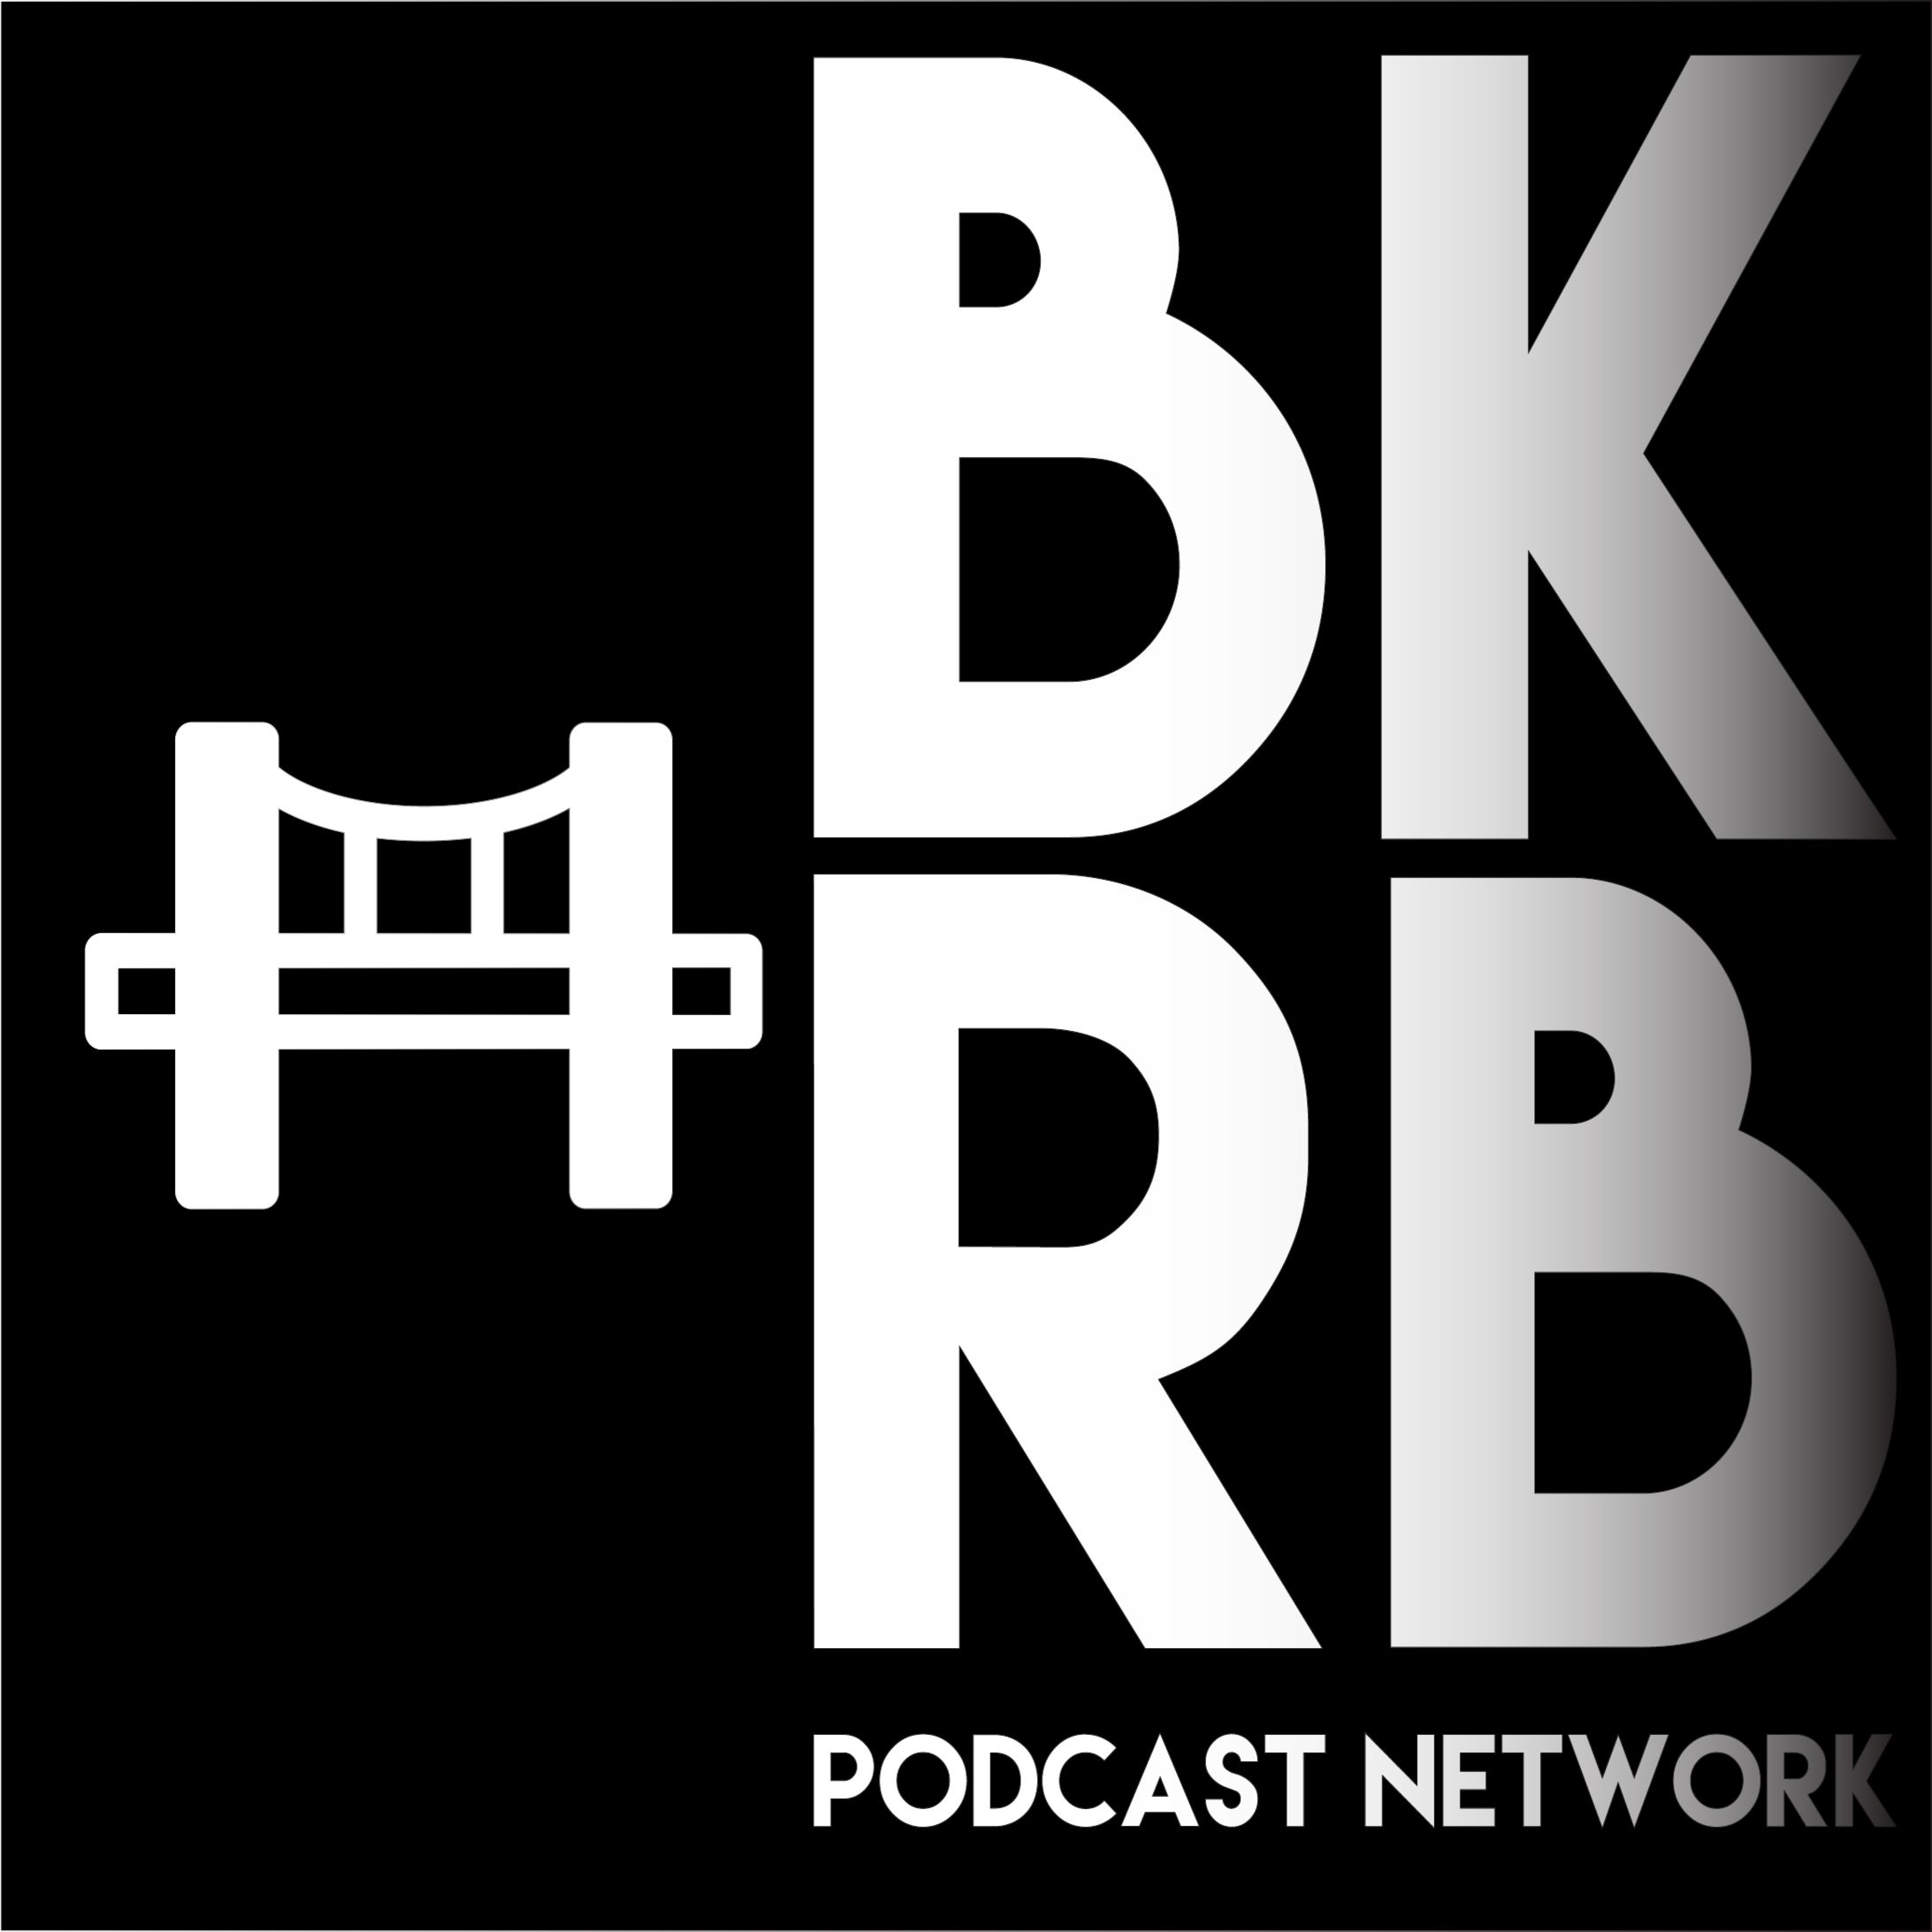 Brooklyn Rebound Network